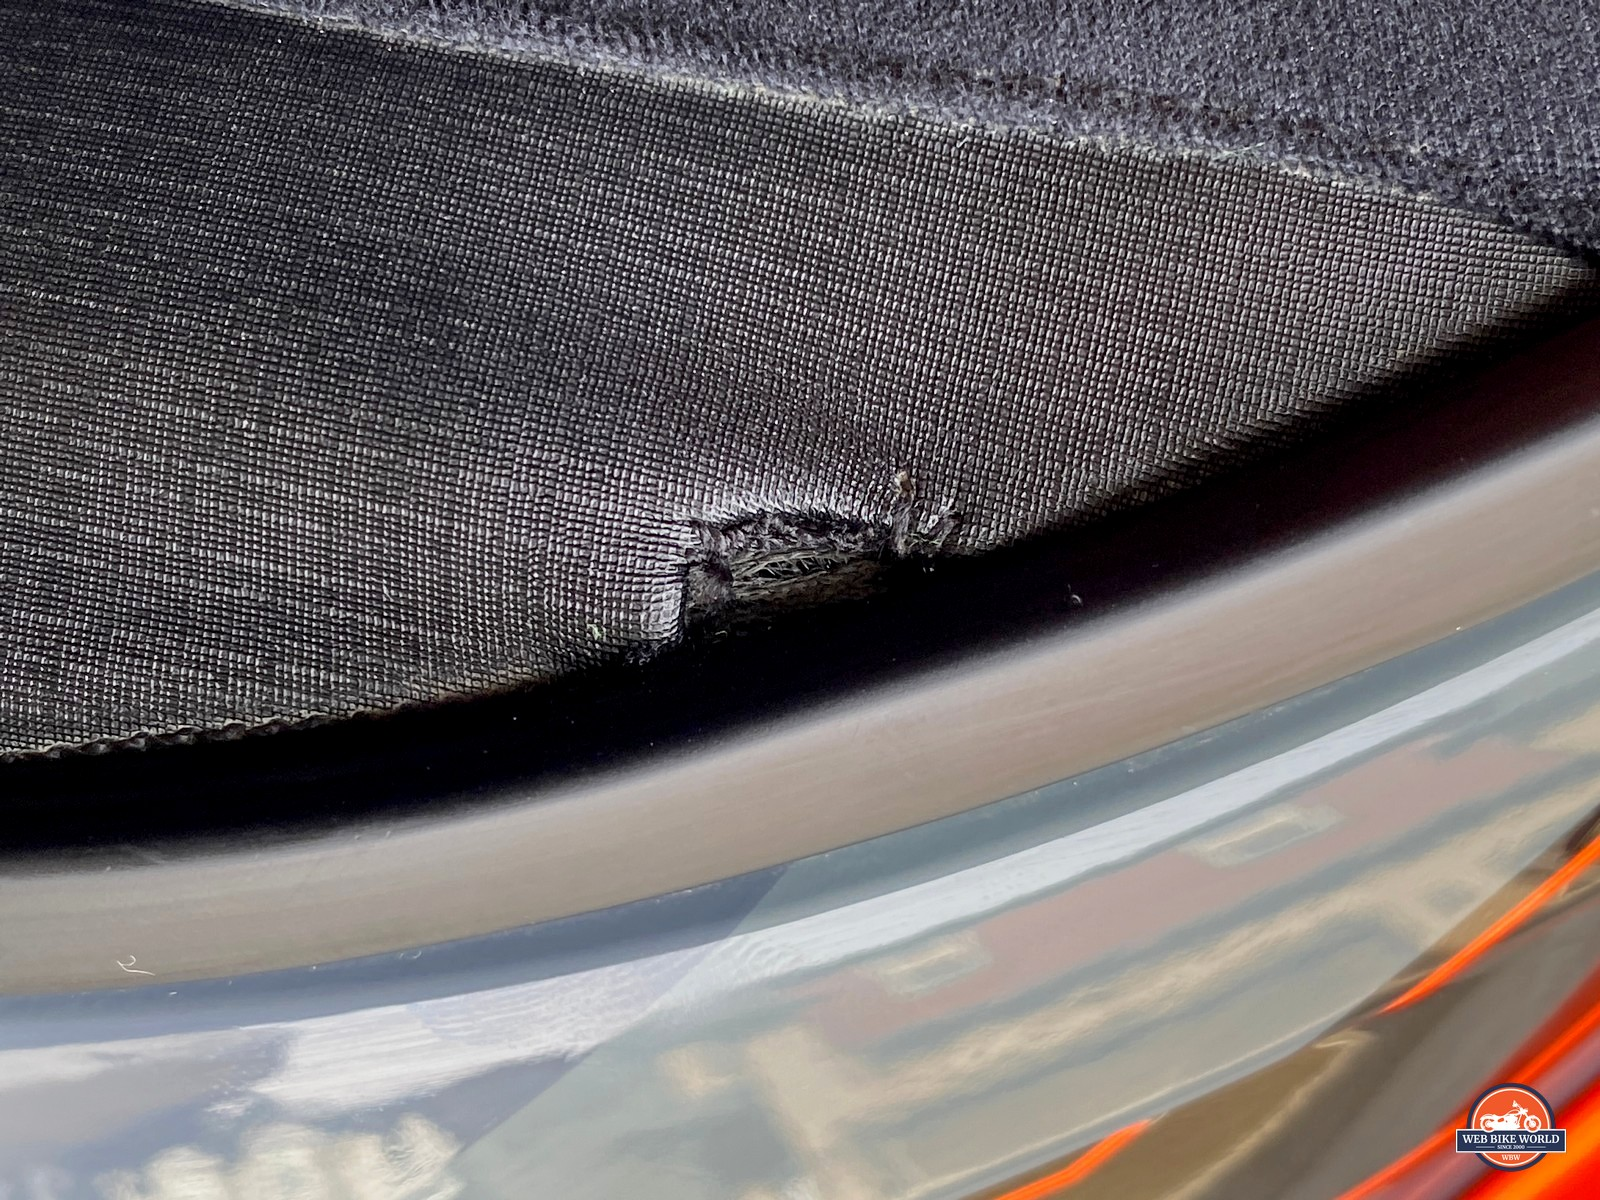 A blemish on the neckroll of the Klim Krios Pro helmet.